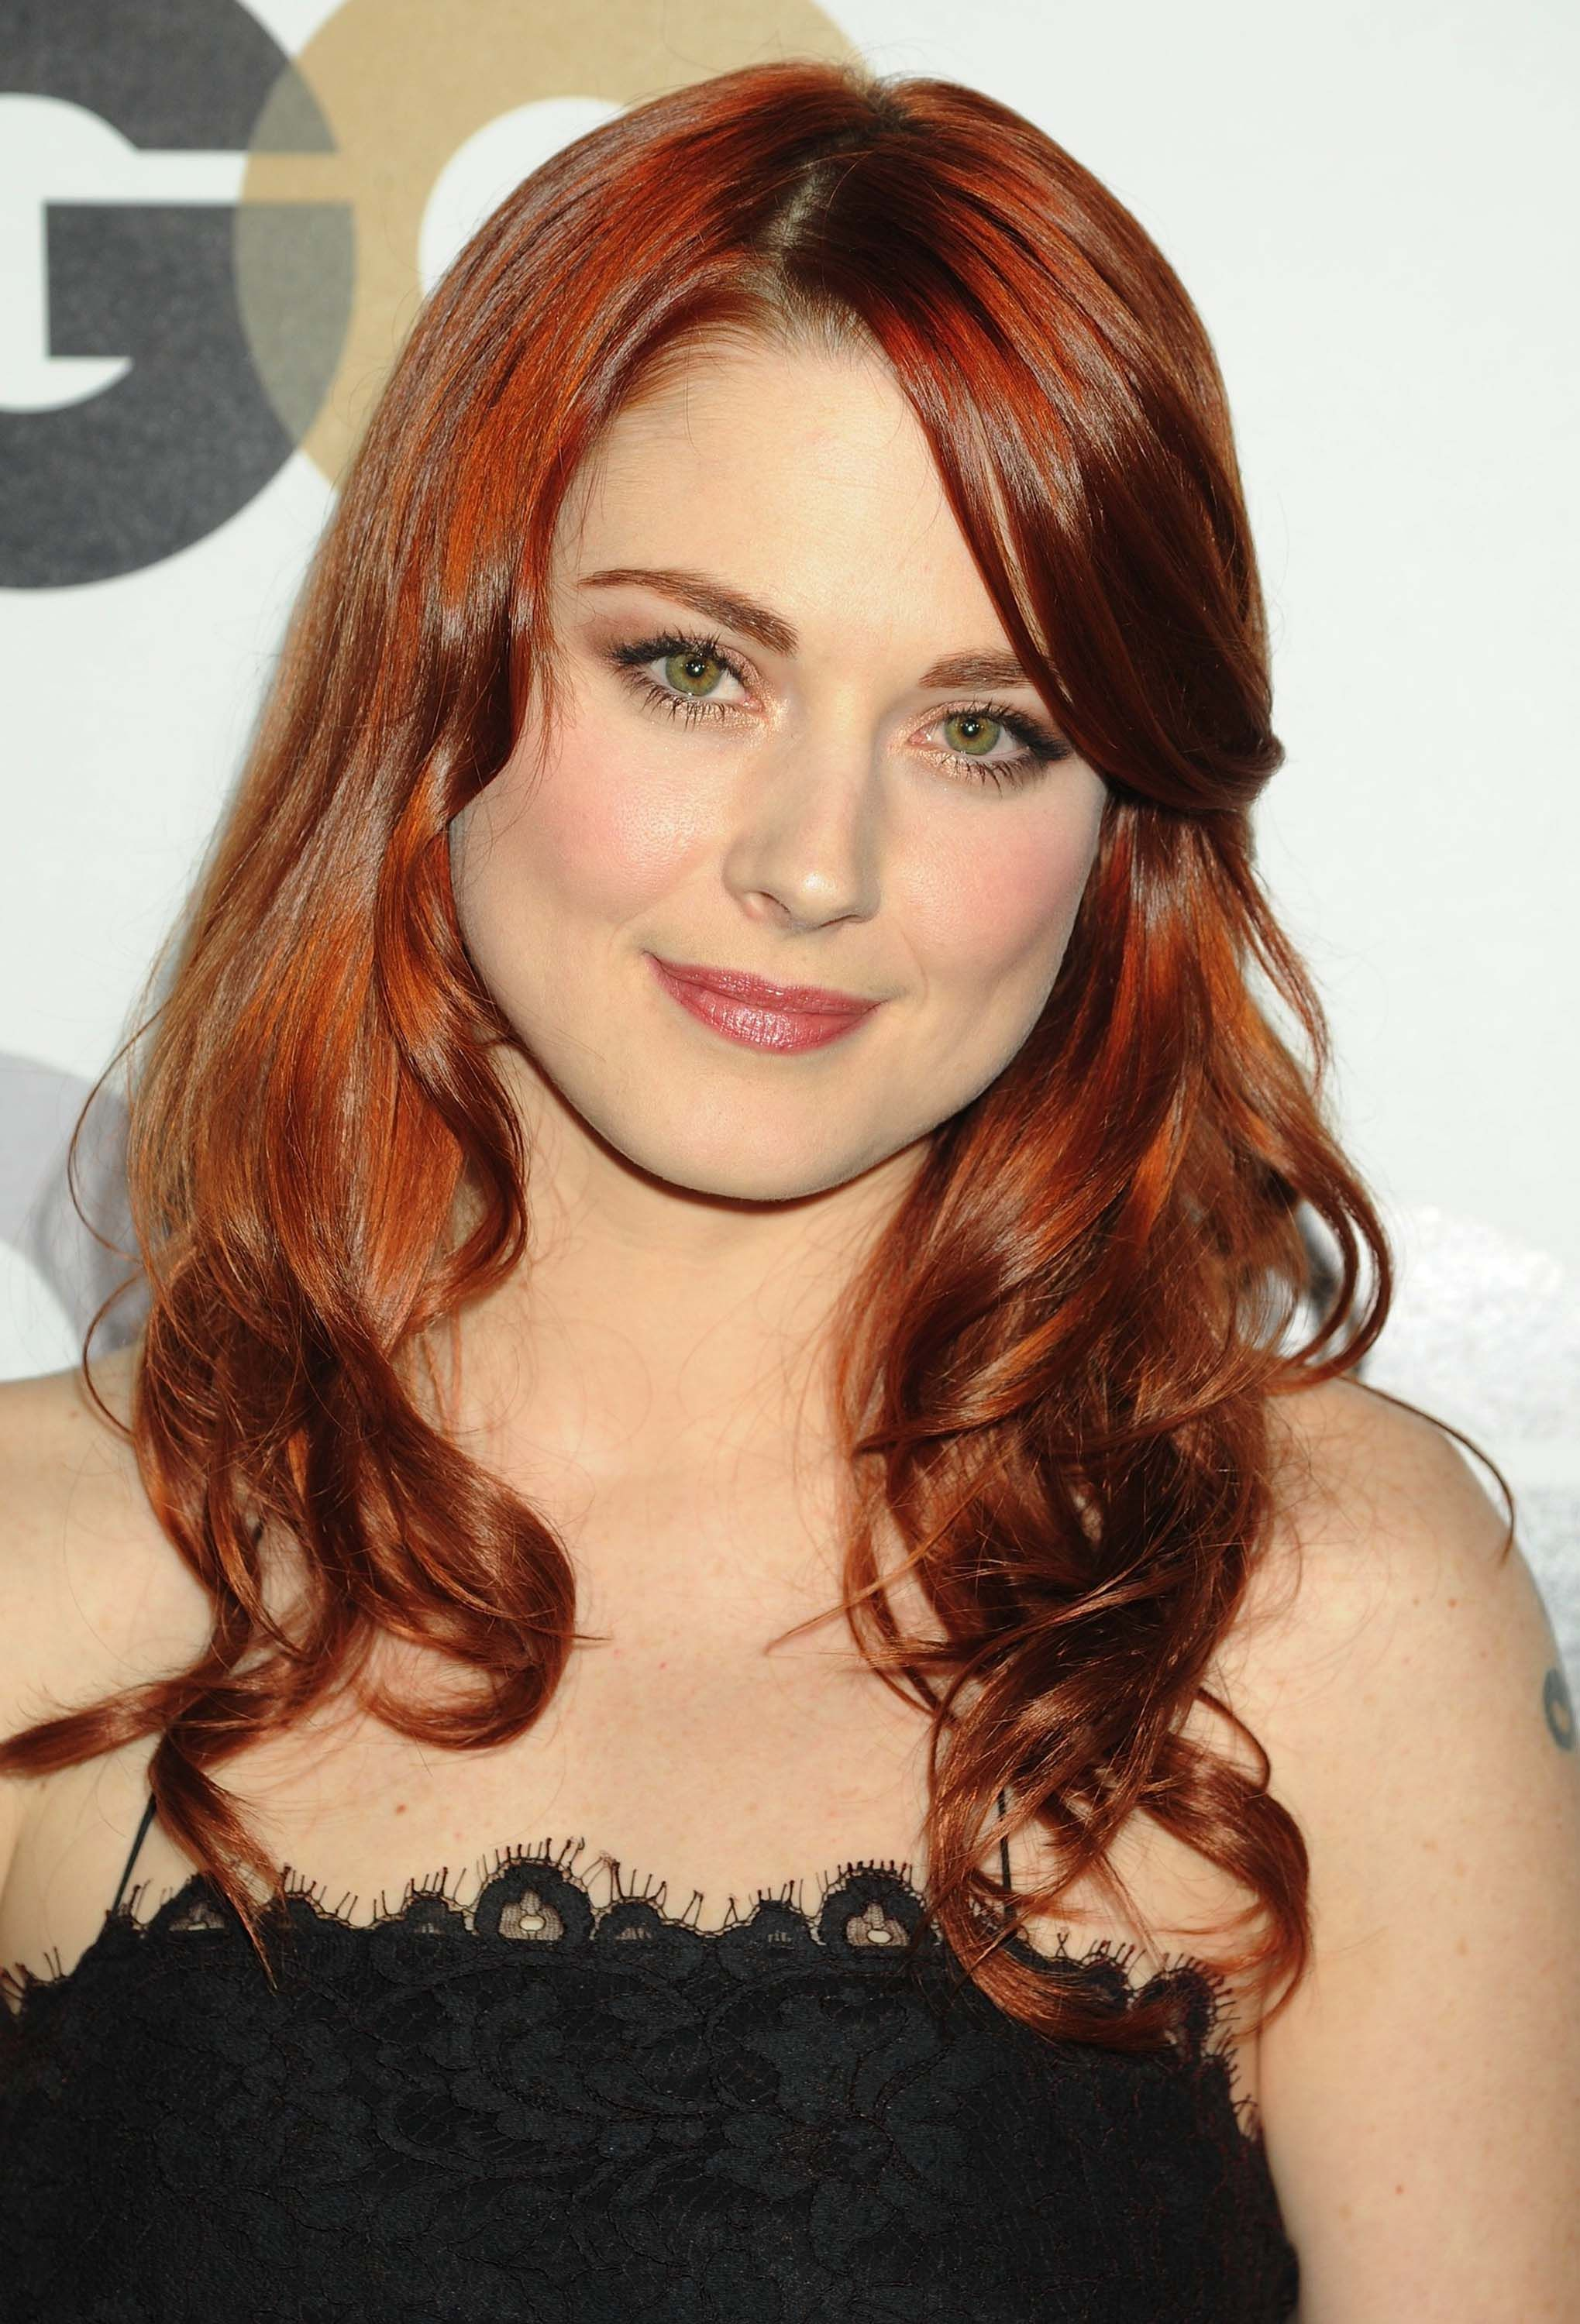 alexandra breckenridge csialexandra breckenridge freaks and geeks, alexandra breckenridge wallpaper, alexandra breckenridge hair color, alexandra breckenridge evan peters, alexandra breckenridge mbti, alexandra breckenridge tumblr gif, alexandra breckenridge cinemorgue, alexandra breckenridge reddit, alexandra breckenridge zimbio, alexandra breckenridge husband, alexandra breckenridge insta, alexandra breckenridge csi, alexandra breckenridge instagram, alexandra breckenridge walking dead, alexandra breckenridge moira o'hara, alexandra breckenridge healthy celeb, alexandra breckenridge fan mail